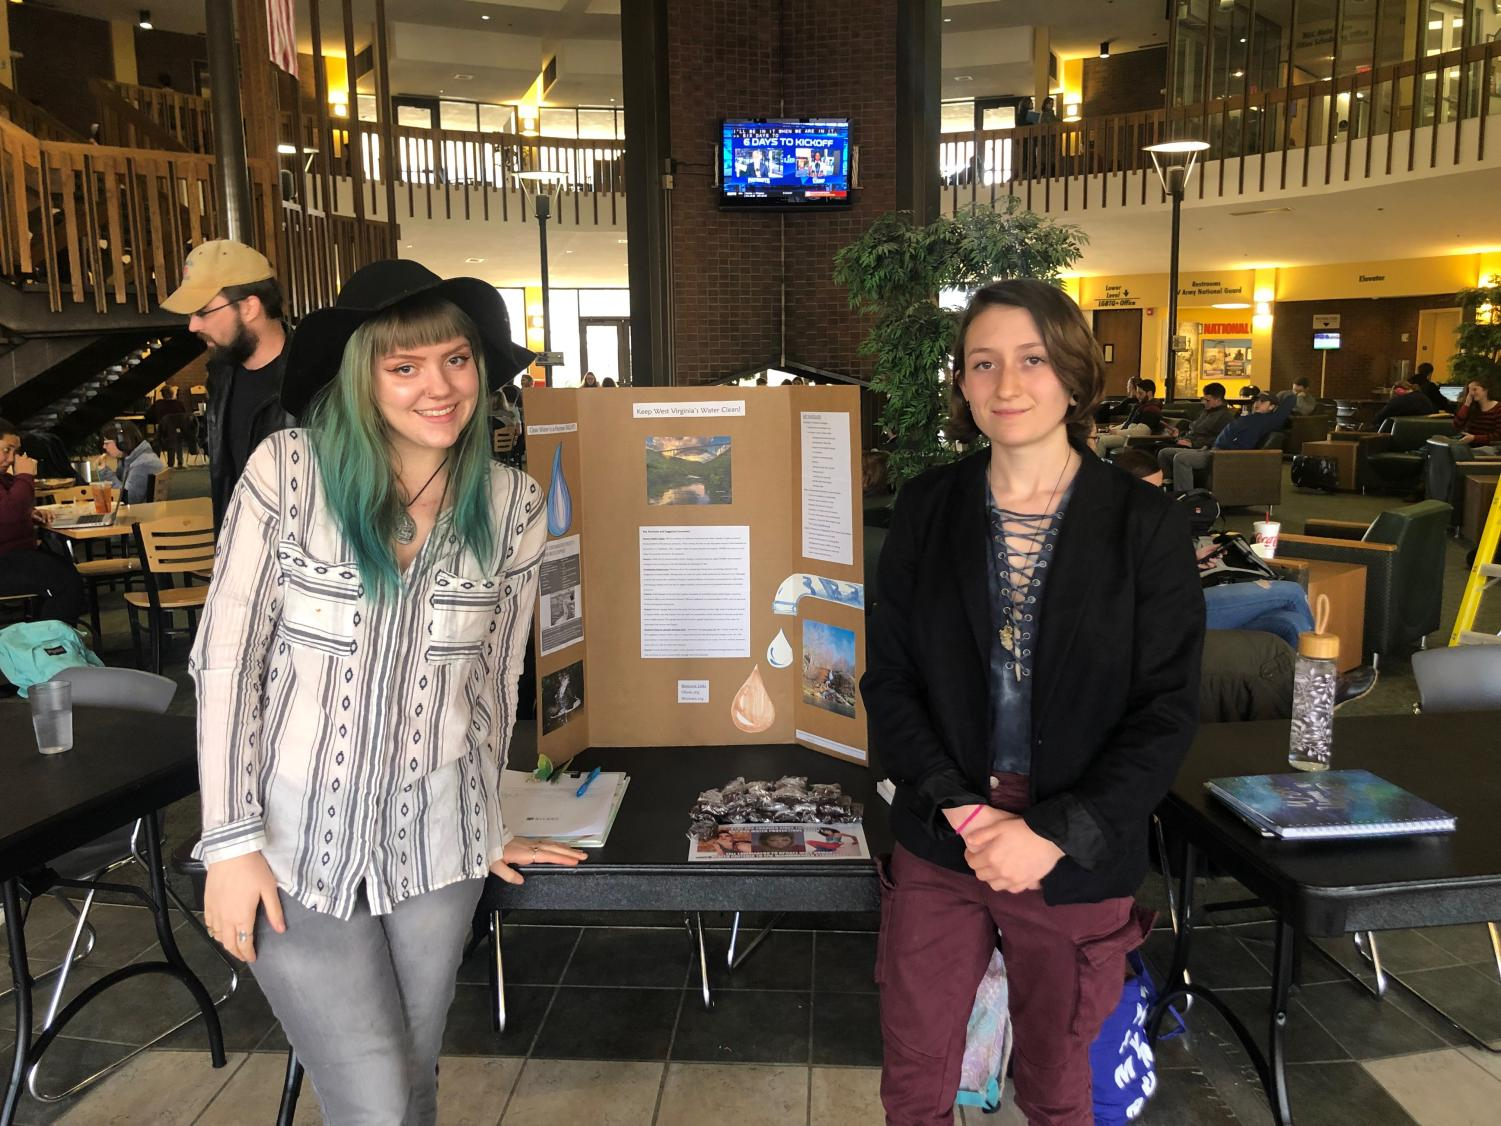 Baleigh Epperly (left) and Abi Gail Taylor (right) tabling in the Memorial Student Center to raise awareness about keeping West Virginia water clean.